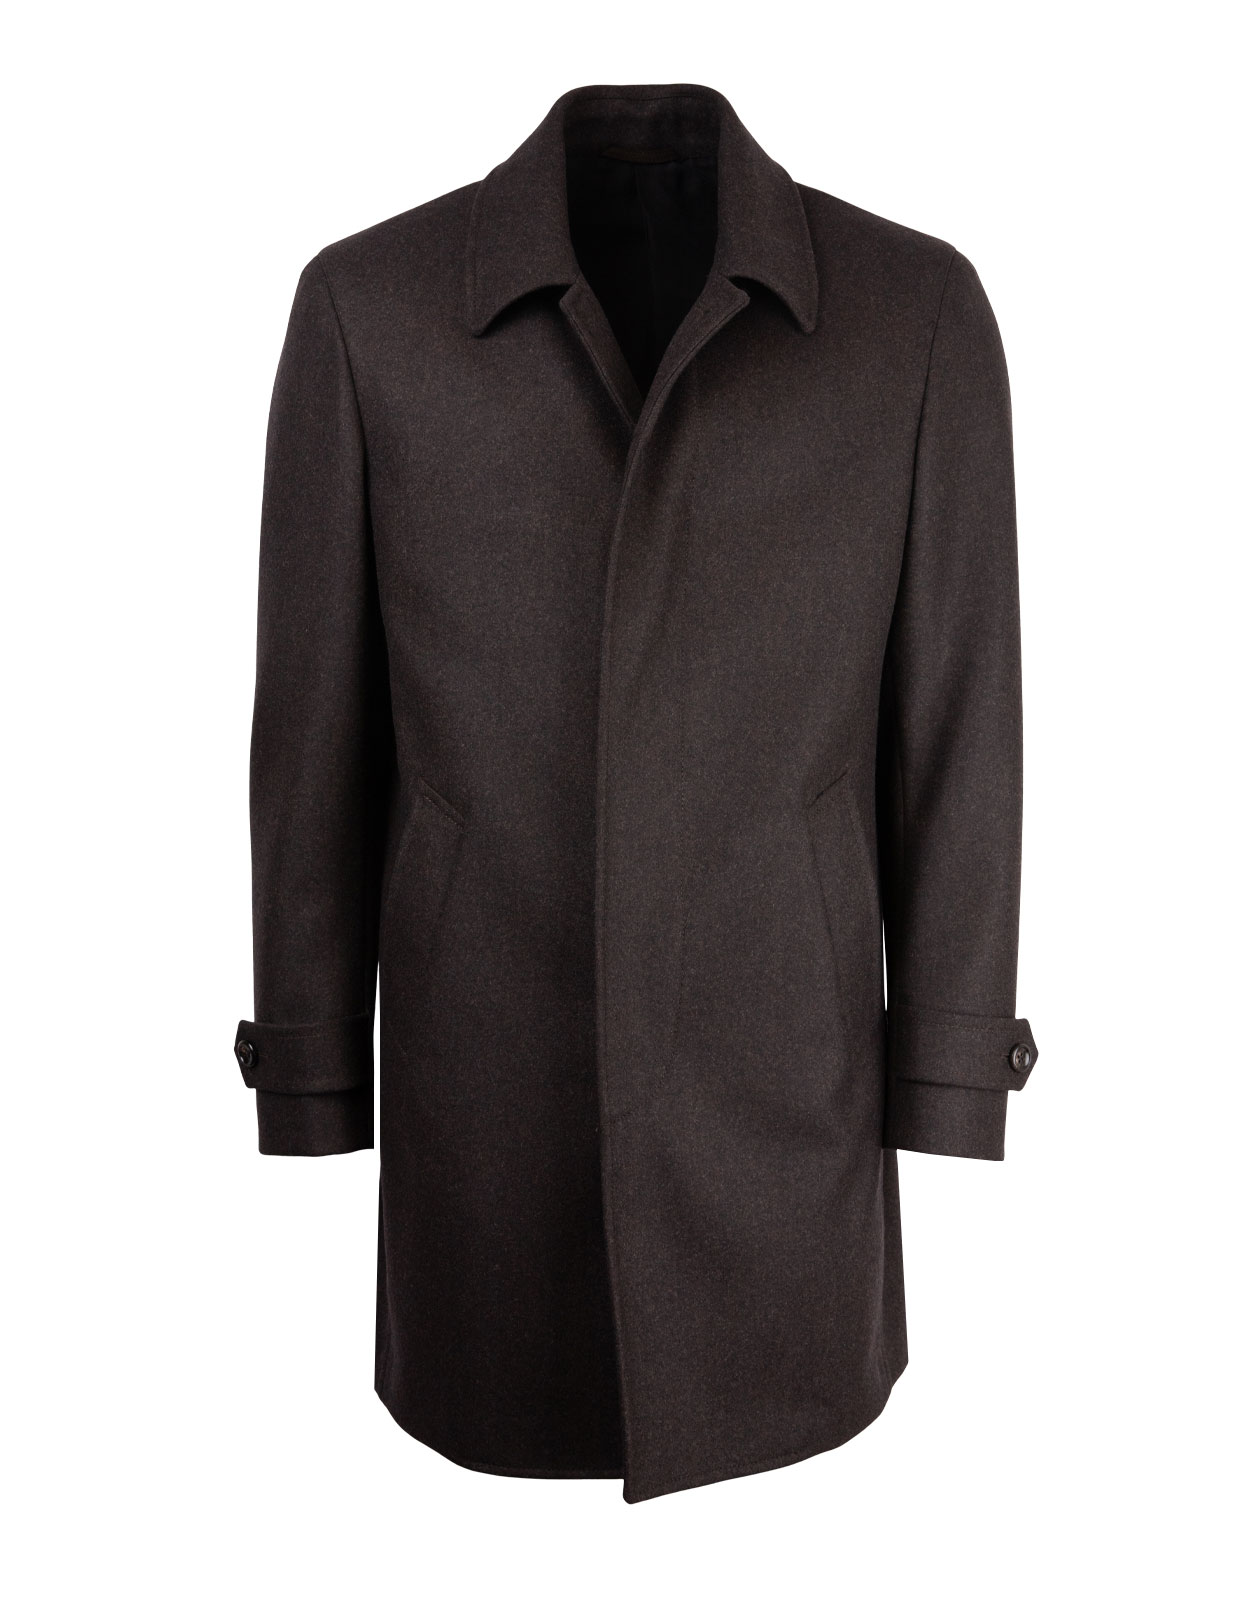 Coat 7387 Vitale Barberis Canonico Vintage DarkBrownMel